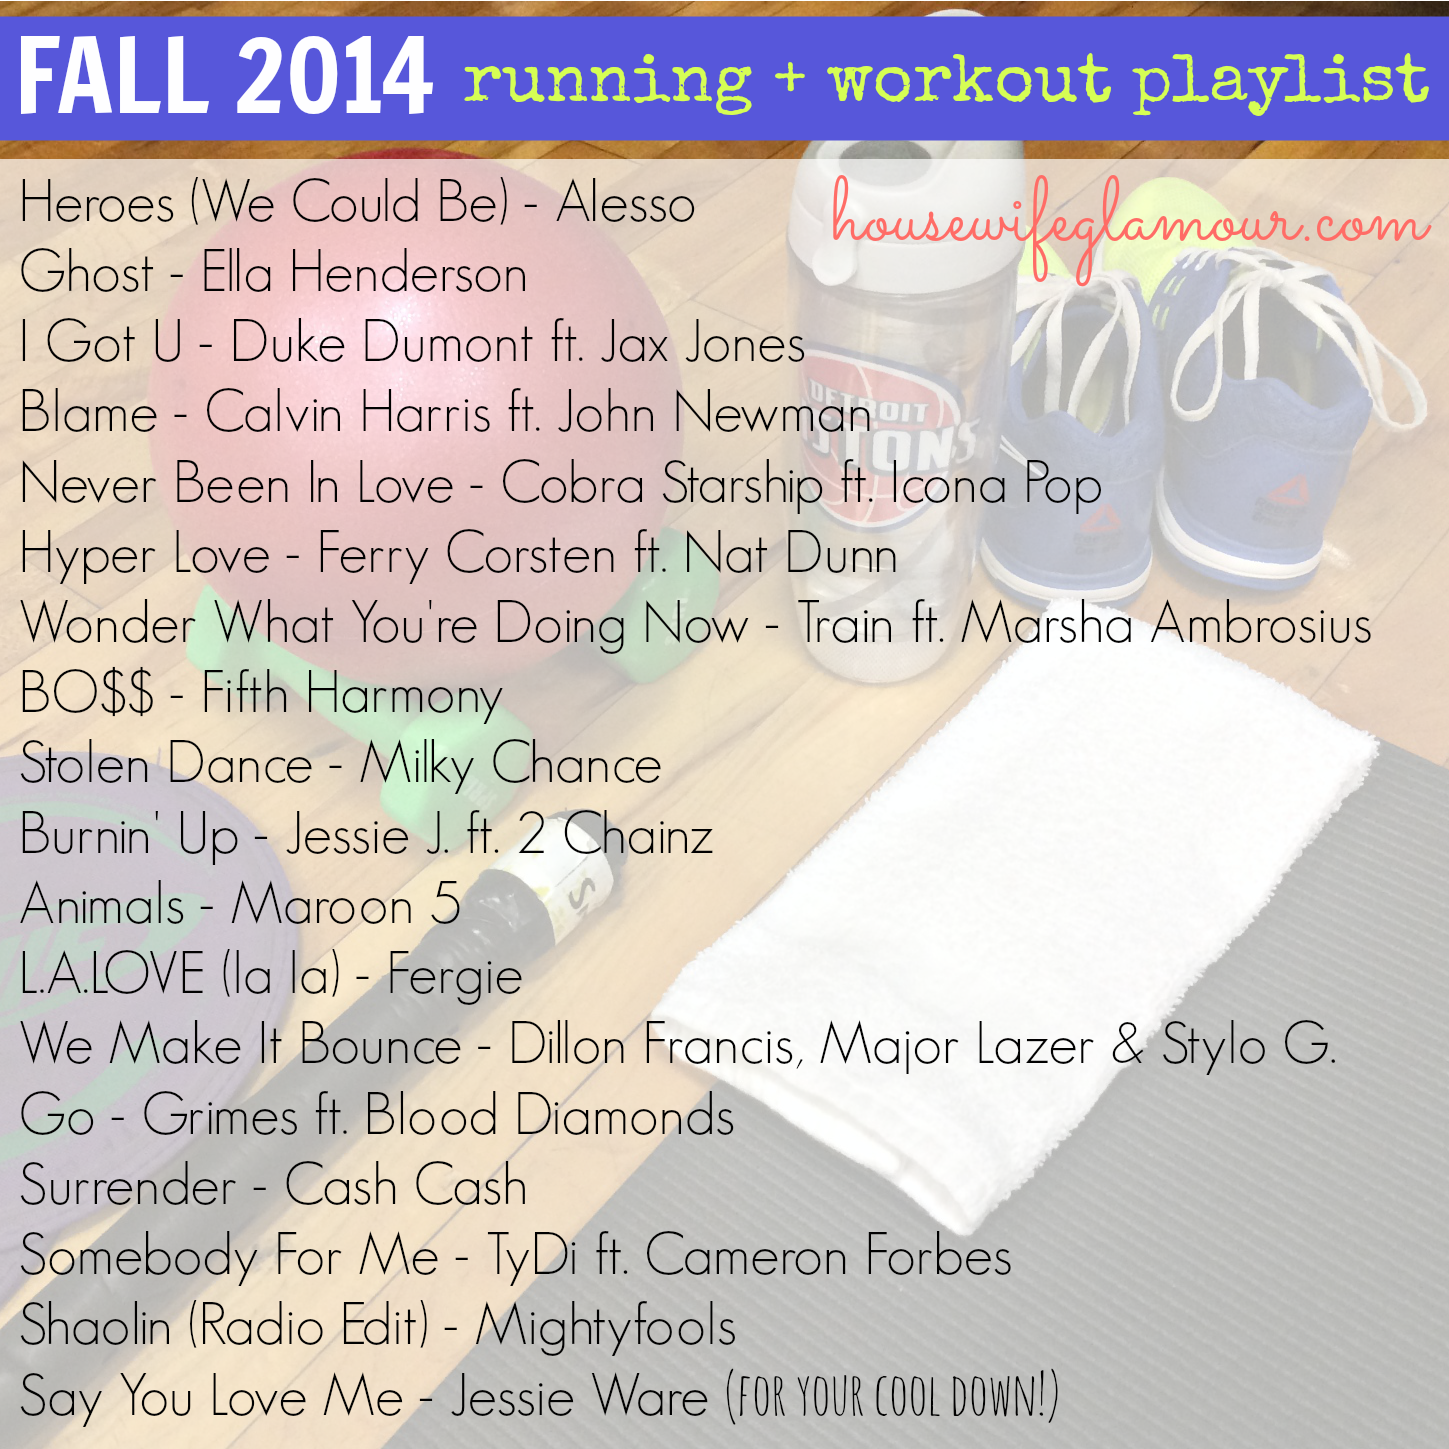 Fall 2014 Running & Workout Playlist